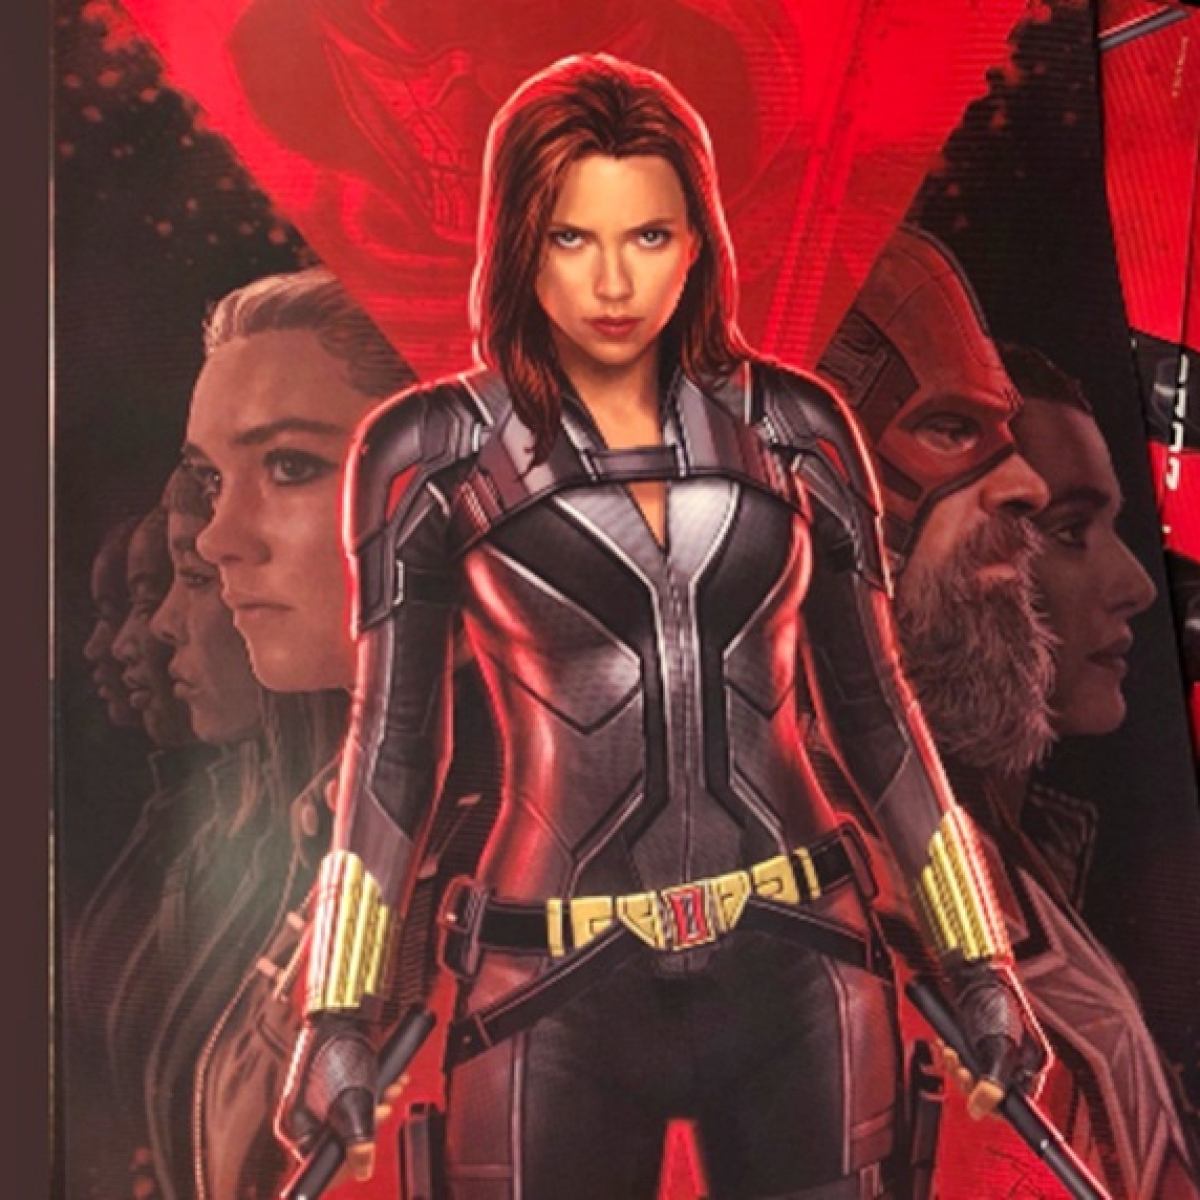 'Black Widow' poster reveals Natasha Romanoff's new suit and David Harbour as Red Guardian